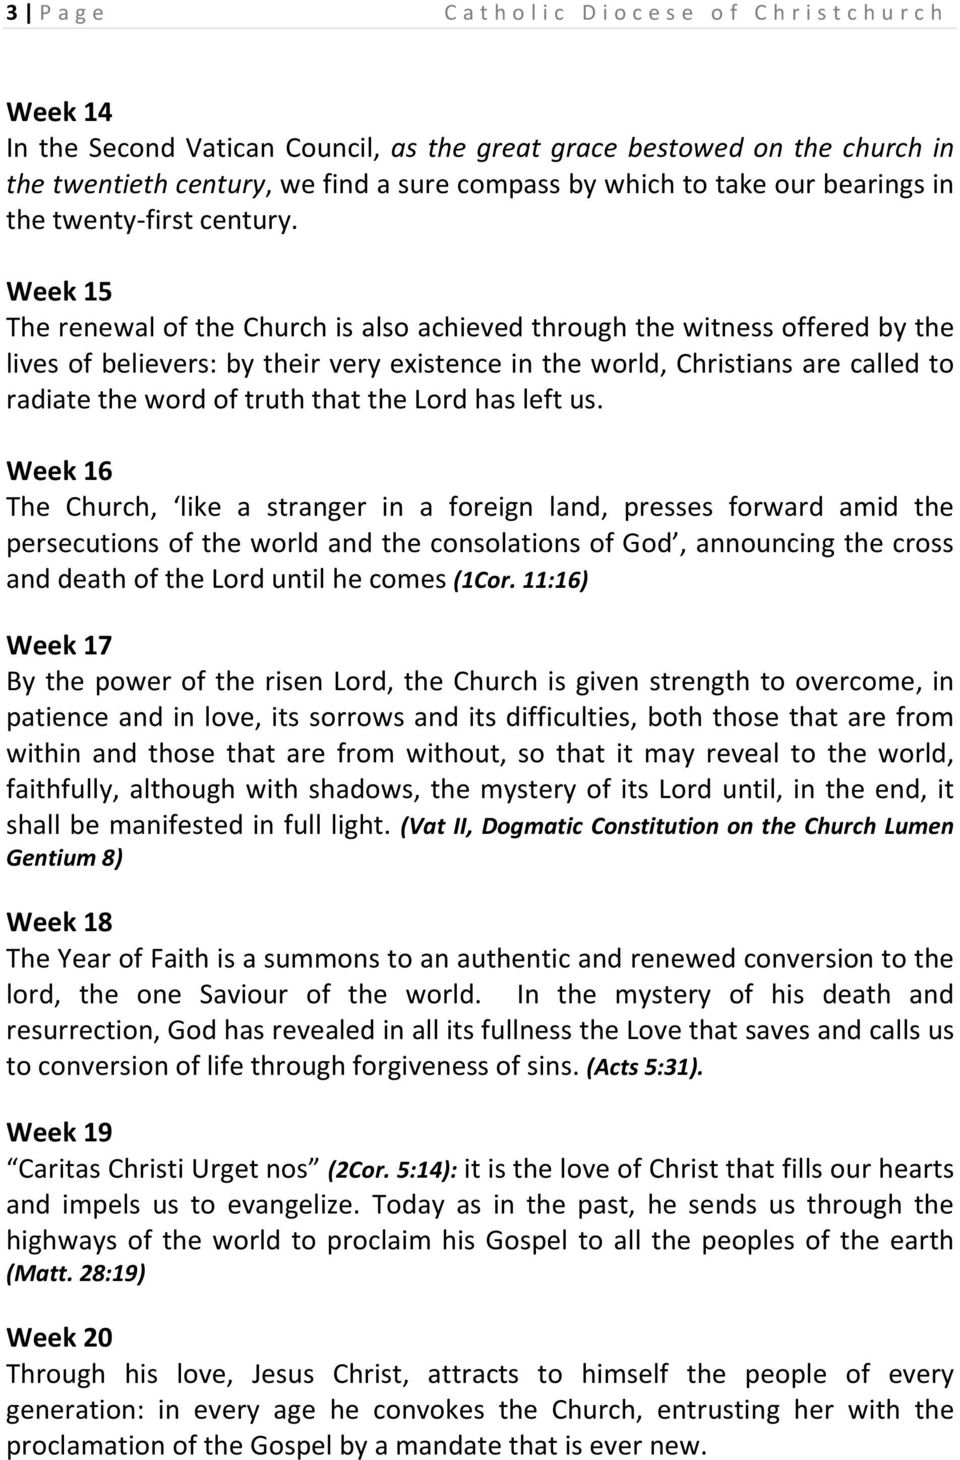 Week 15 The renewal of the Church is also achieved through the witness offered by the lives of believers: by their very existence in the world, Christians are called to radiate the word of truth that